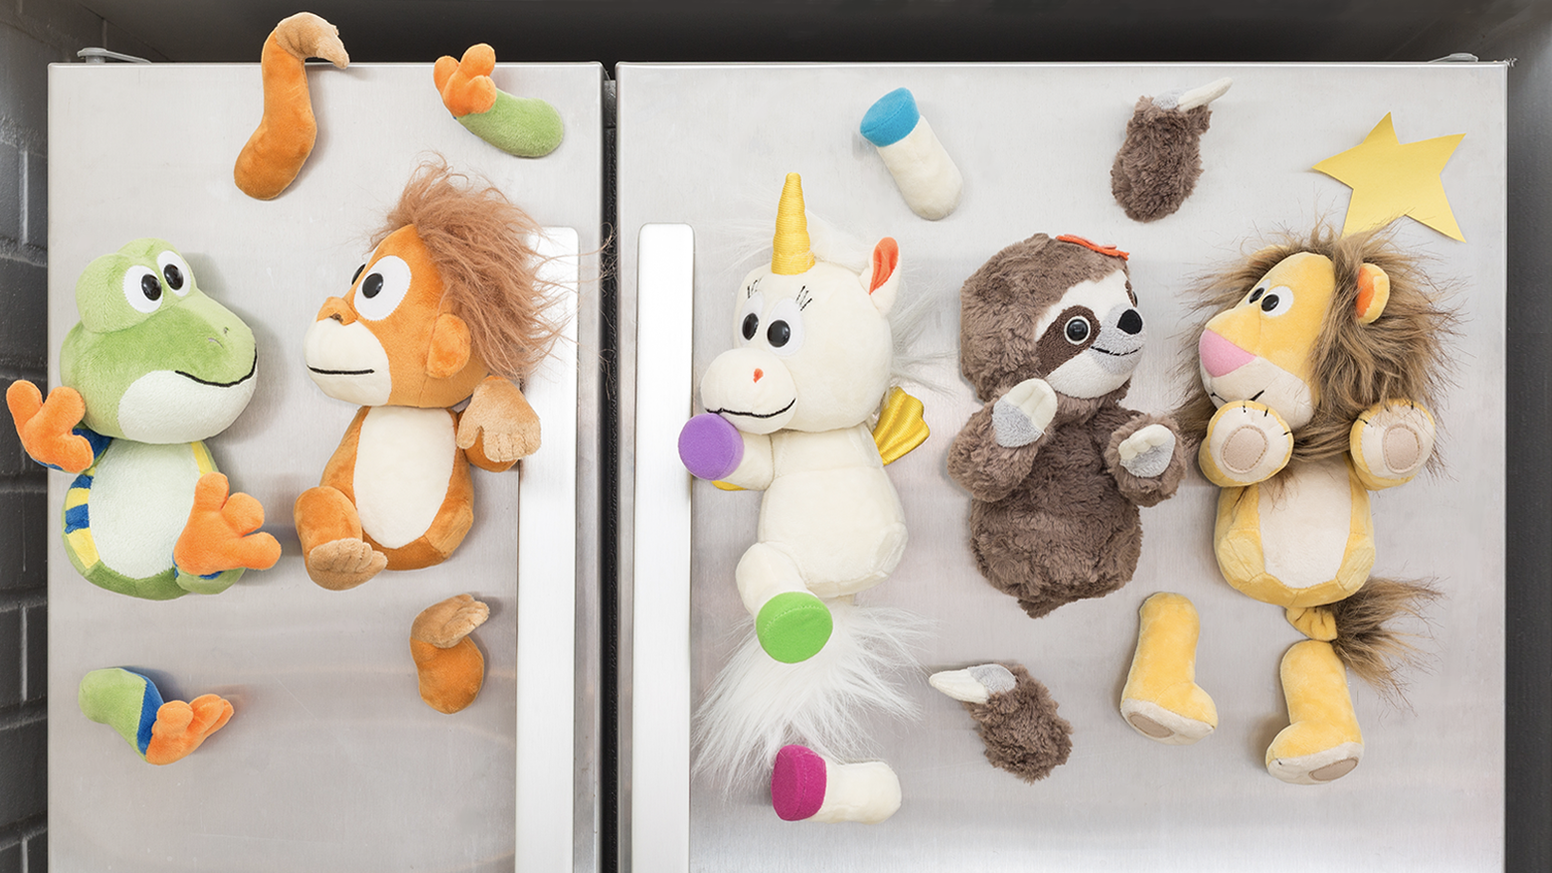 242425f81 A wildly fun system of magnetic stuffed animals for kids. Mix & make  endless combinations